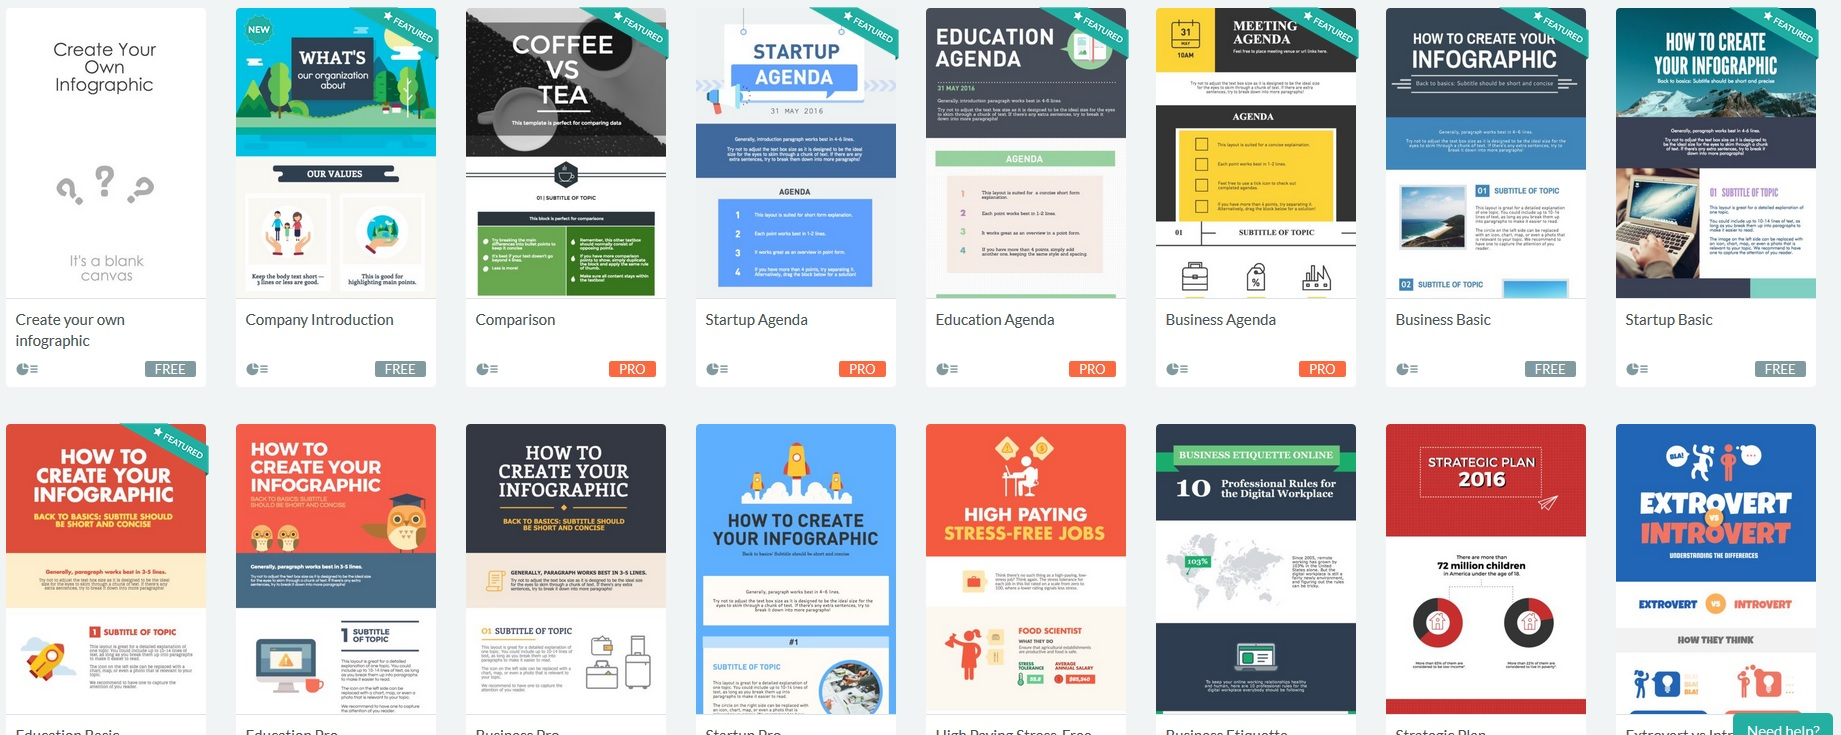 Top 5 Free Infographic Creation Sites Used and Reviewed! - SEOClerks